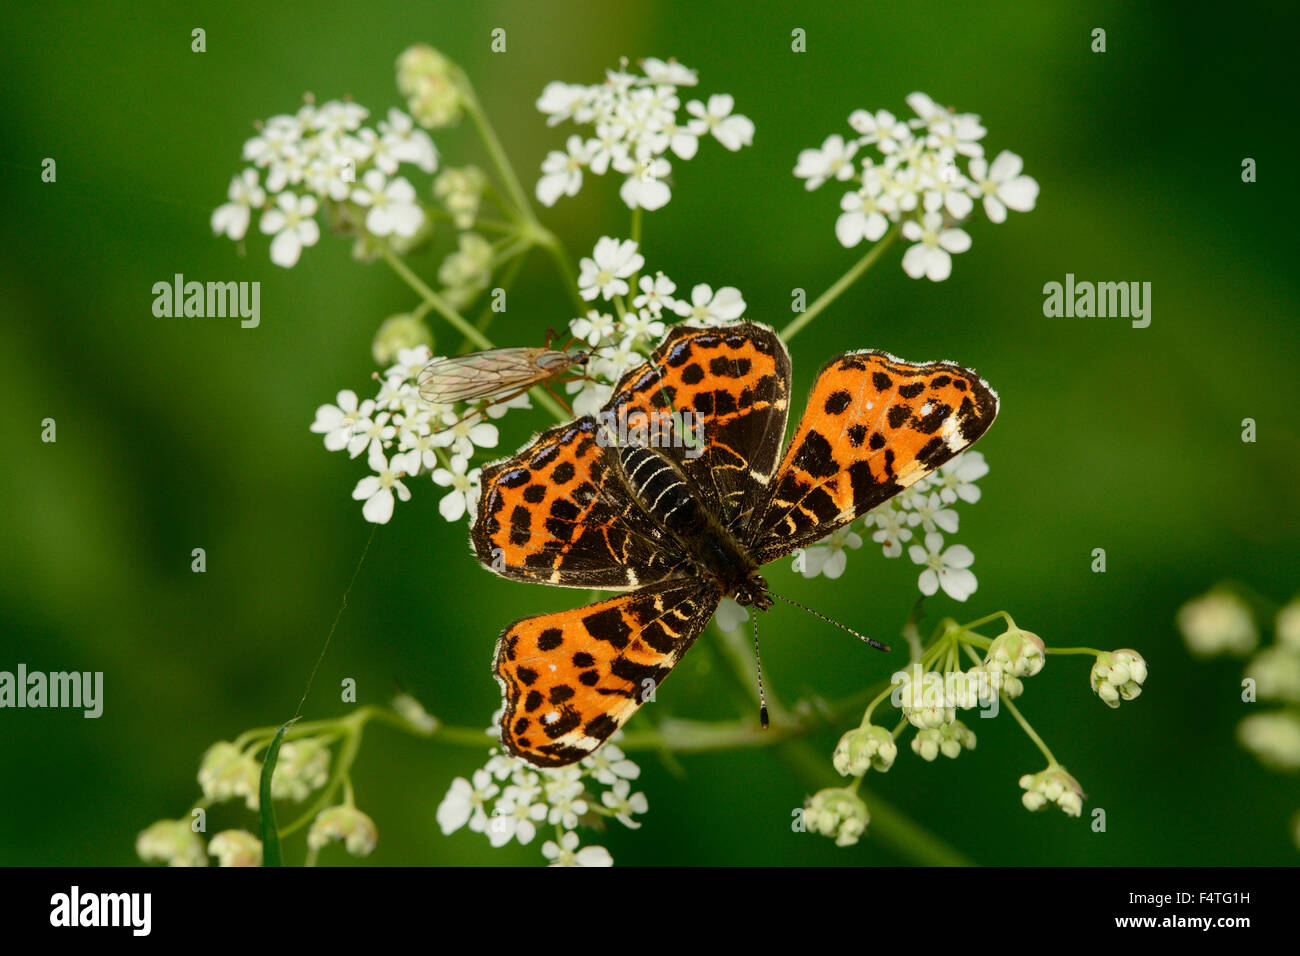 Map, Araschina levana, Nymphalidae, spring brood, butterfly, insect, animal, pond area, Linum, Brandenburg, Germany - Stock Image